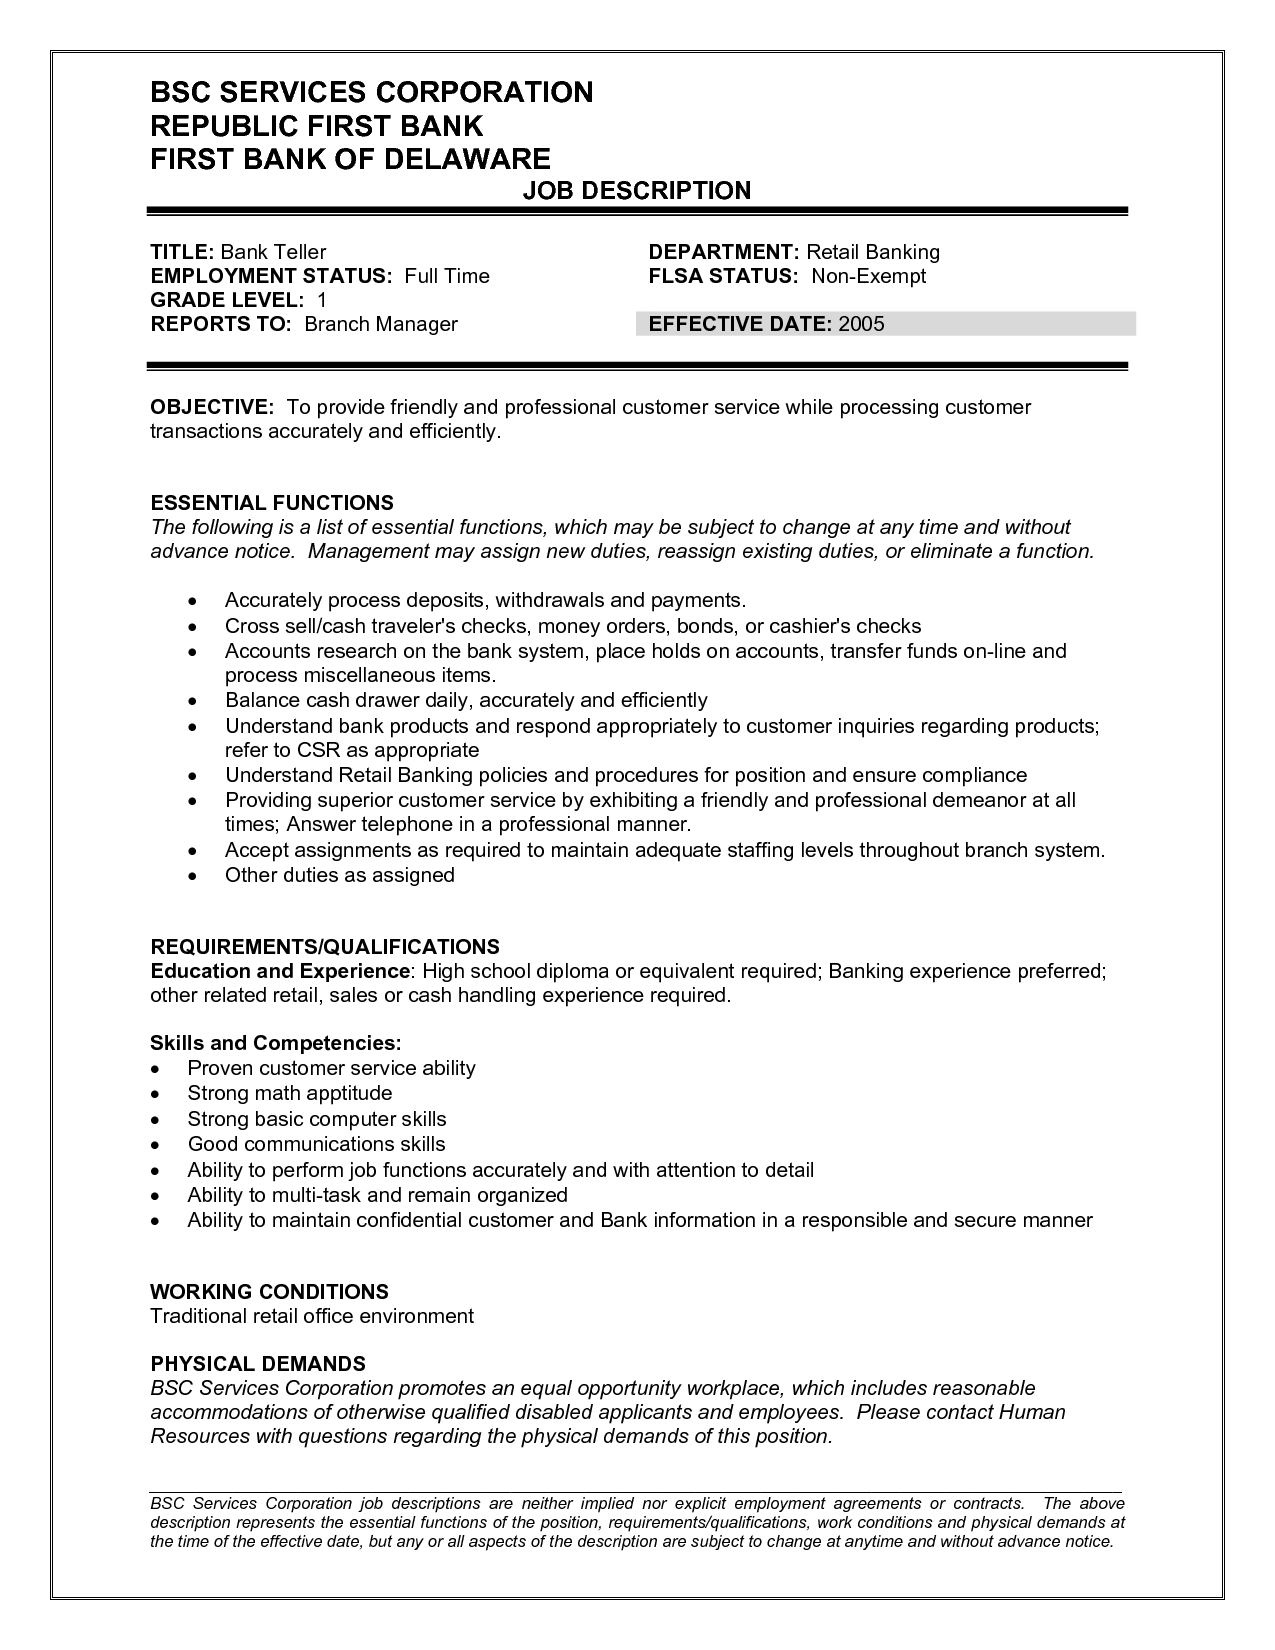 best bank teller resume samples job description resume. Resume Example. Resume CV Cover Letter